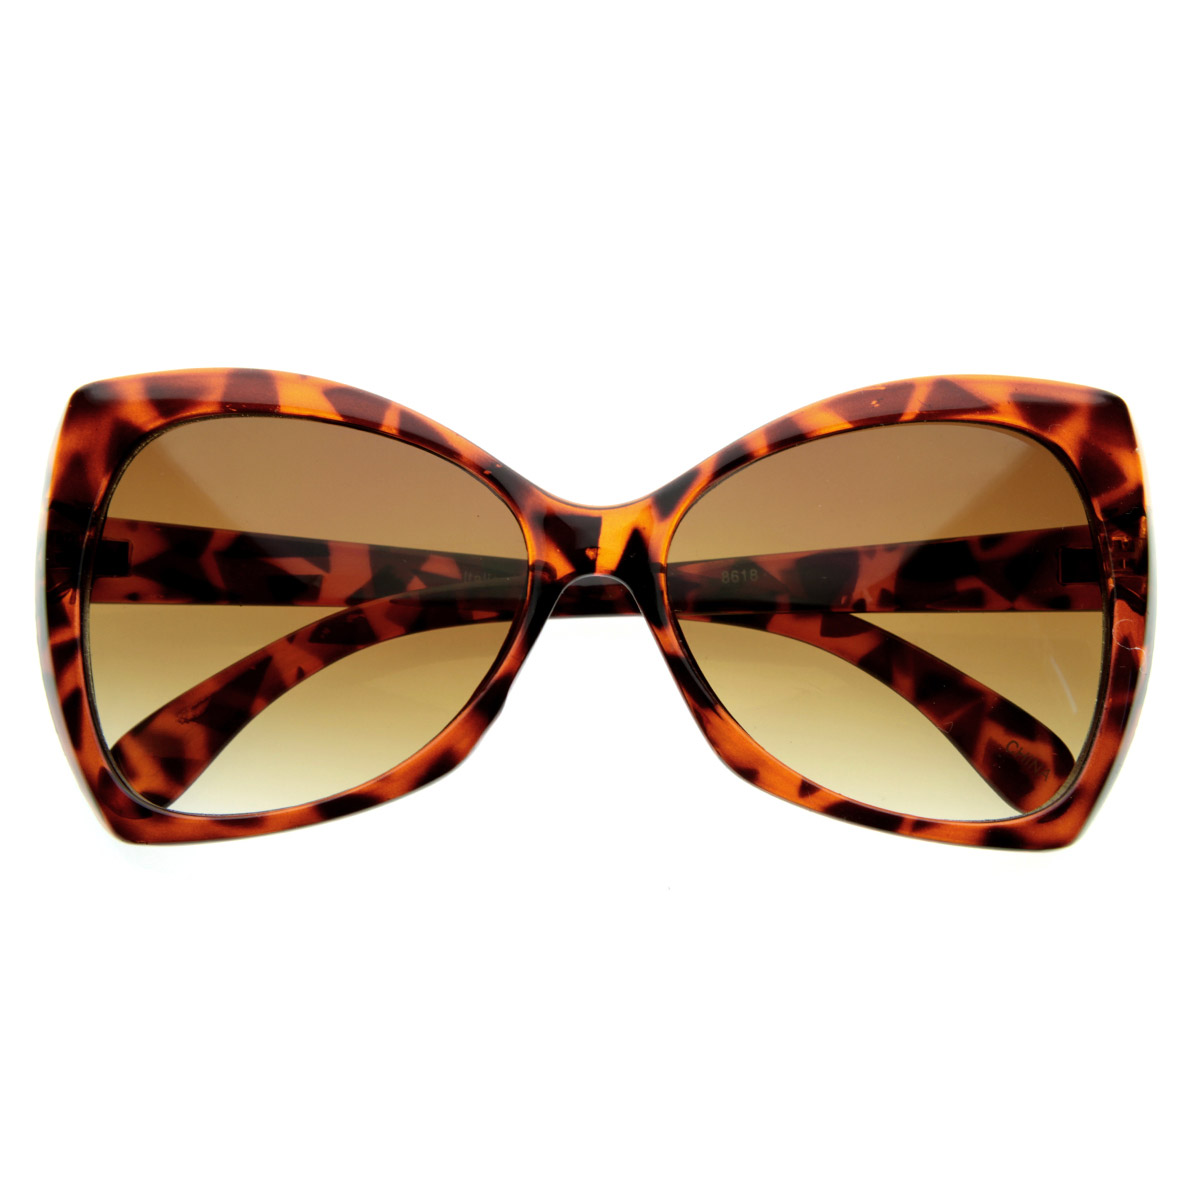 2e805446eb78 Sell Designer Sunglasses Uk